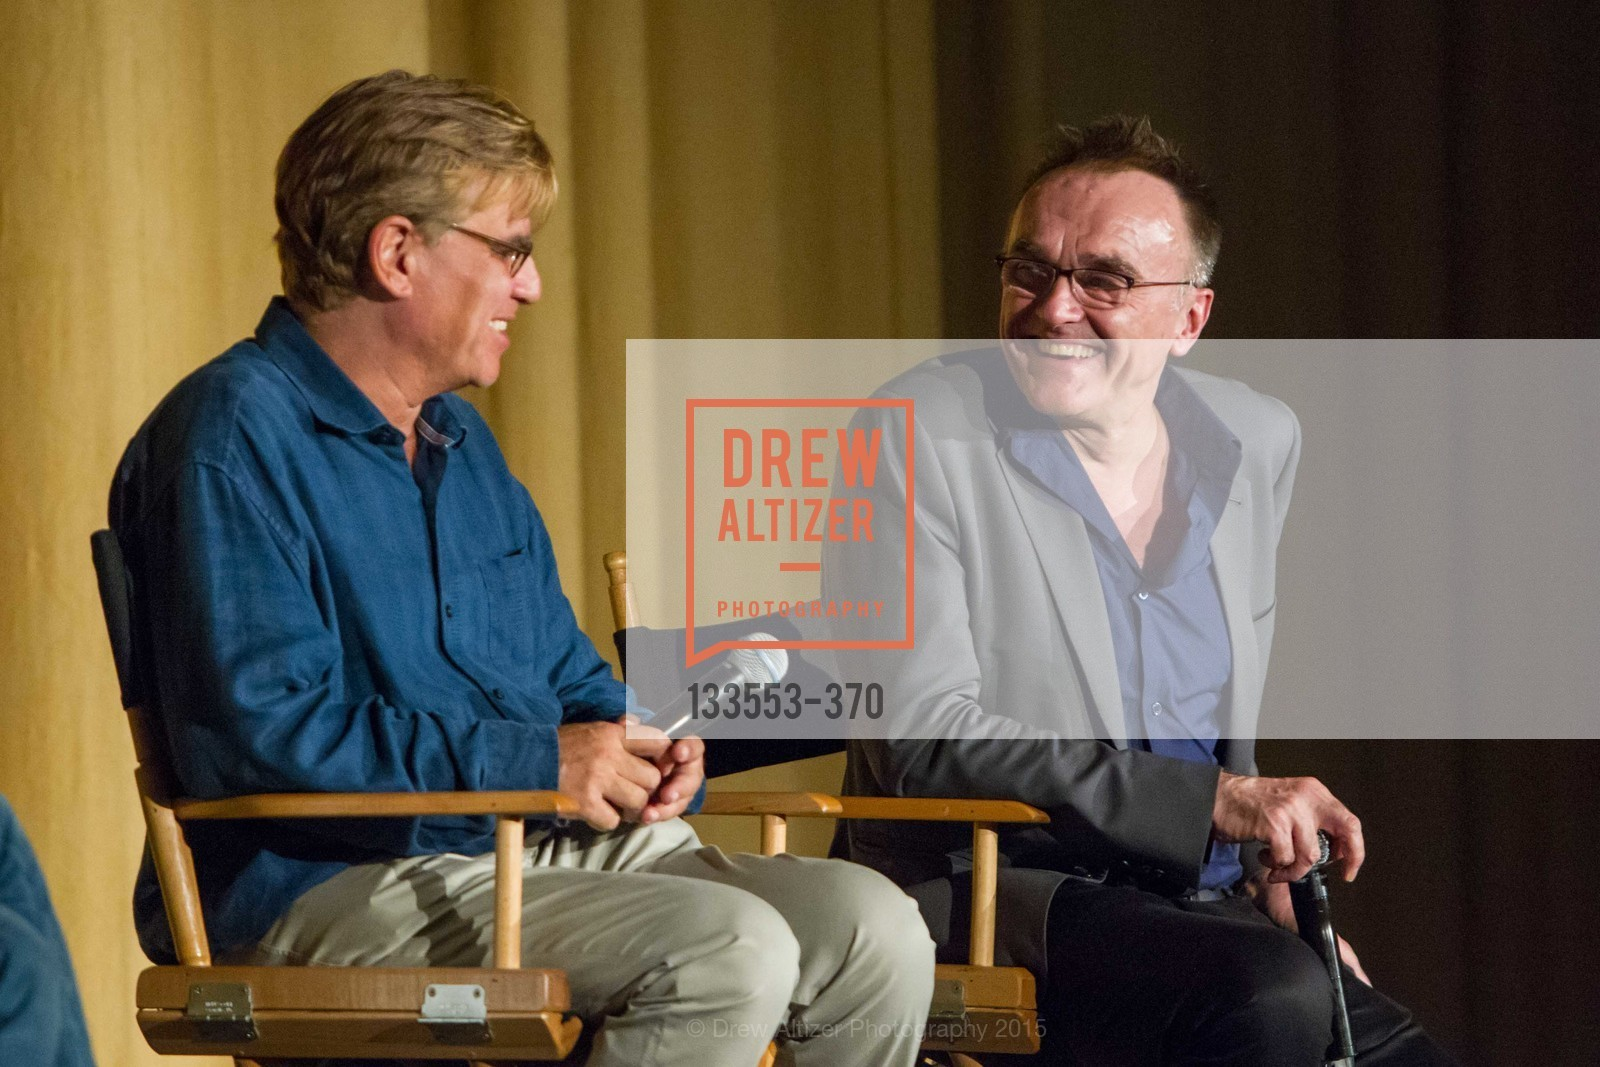 Screenwriter Aaron Sorkin, And Director Danny Boyle, SAN FRANCISCO SPECIAL SCREENING OF STEVE JOBS PRESENTED BY UNIVERSAL PICTURES, OCTOBER 9, 2015 AT THE CASTRO THEATRE, Castro Theater, October 9th, 2015,Drew Altizer, Drew Altizer Photography, full-service agency, private events, San Francisco photographer, photographer california